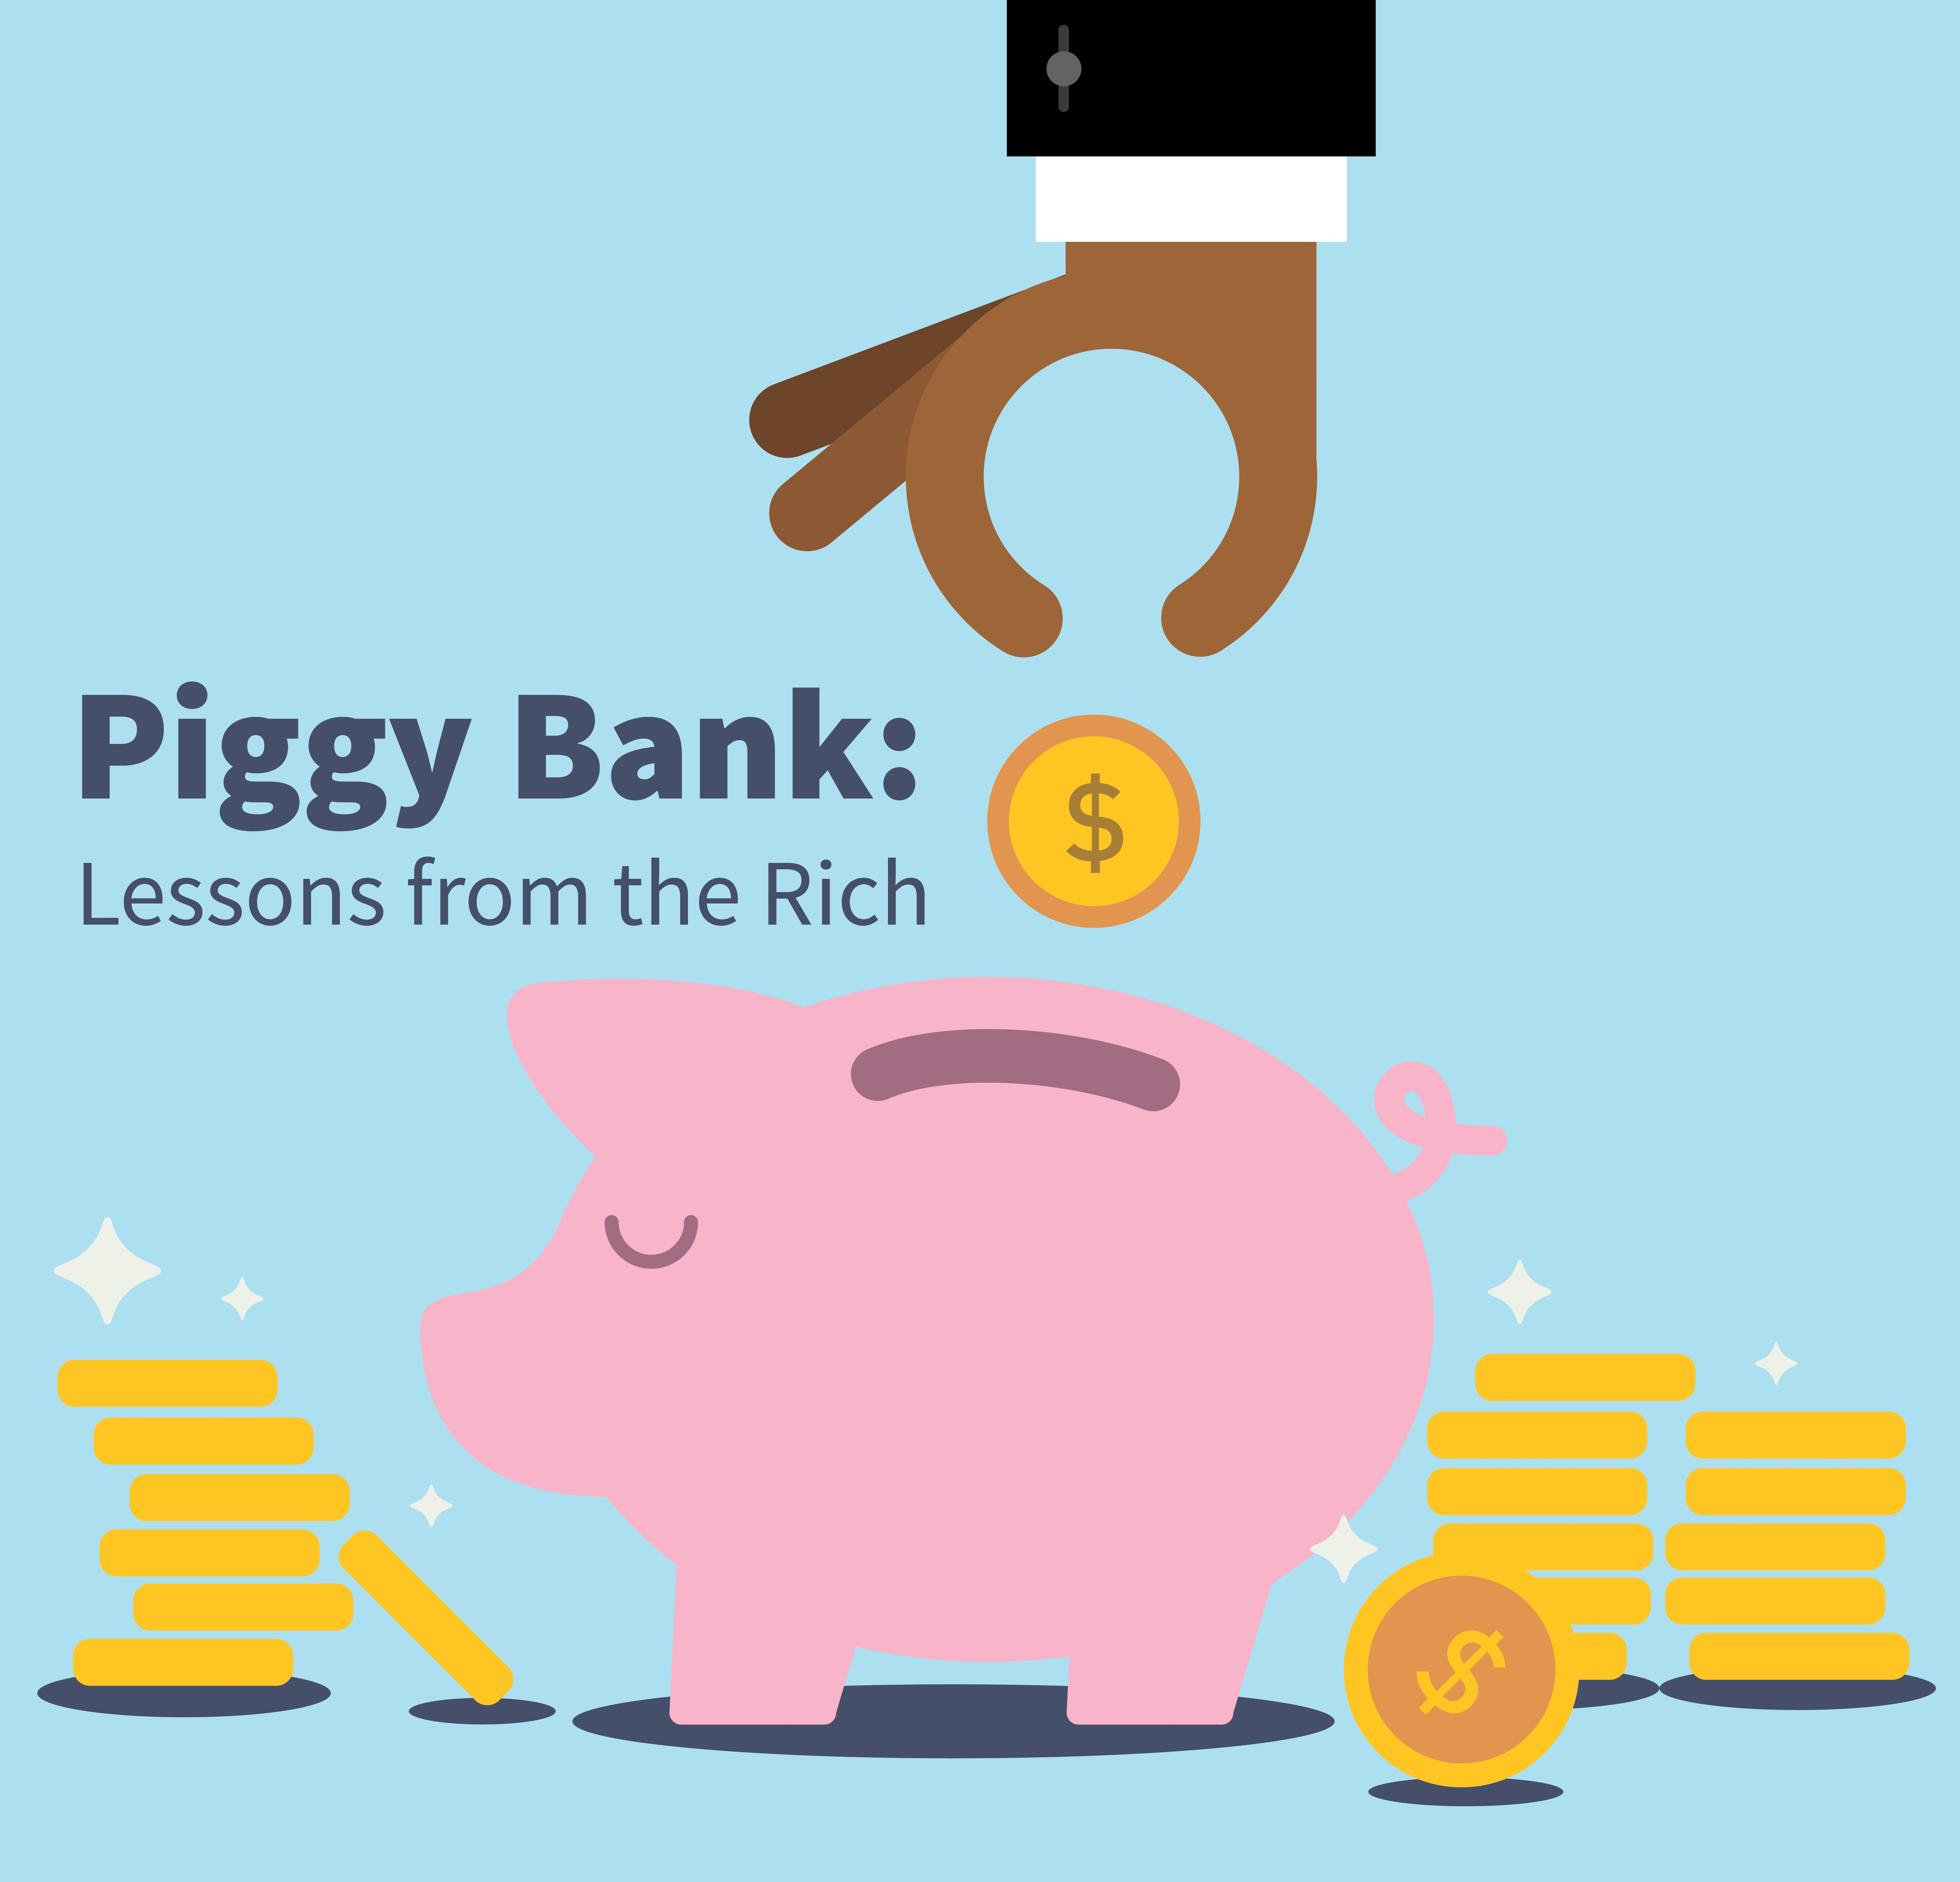 piggy bank lessons from rich blog-01.jpg